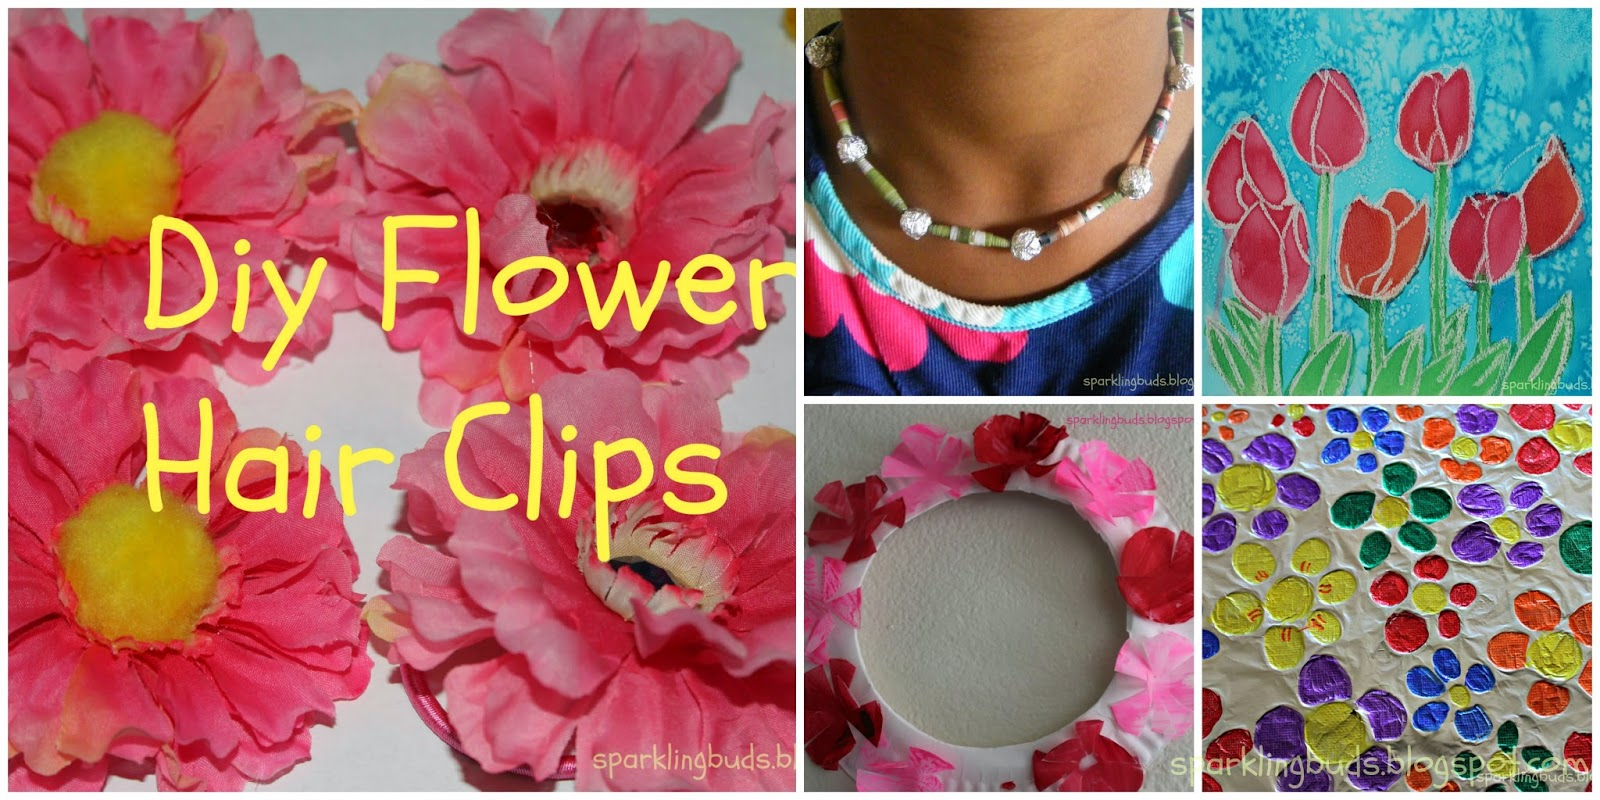 Fake flowers for crafts - Diy Flower Hair Clips Hair Clips From Artificial Flowers